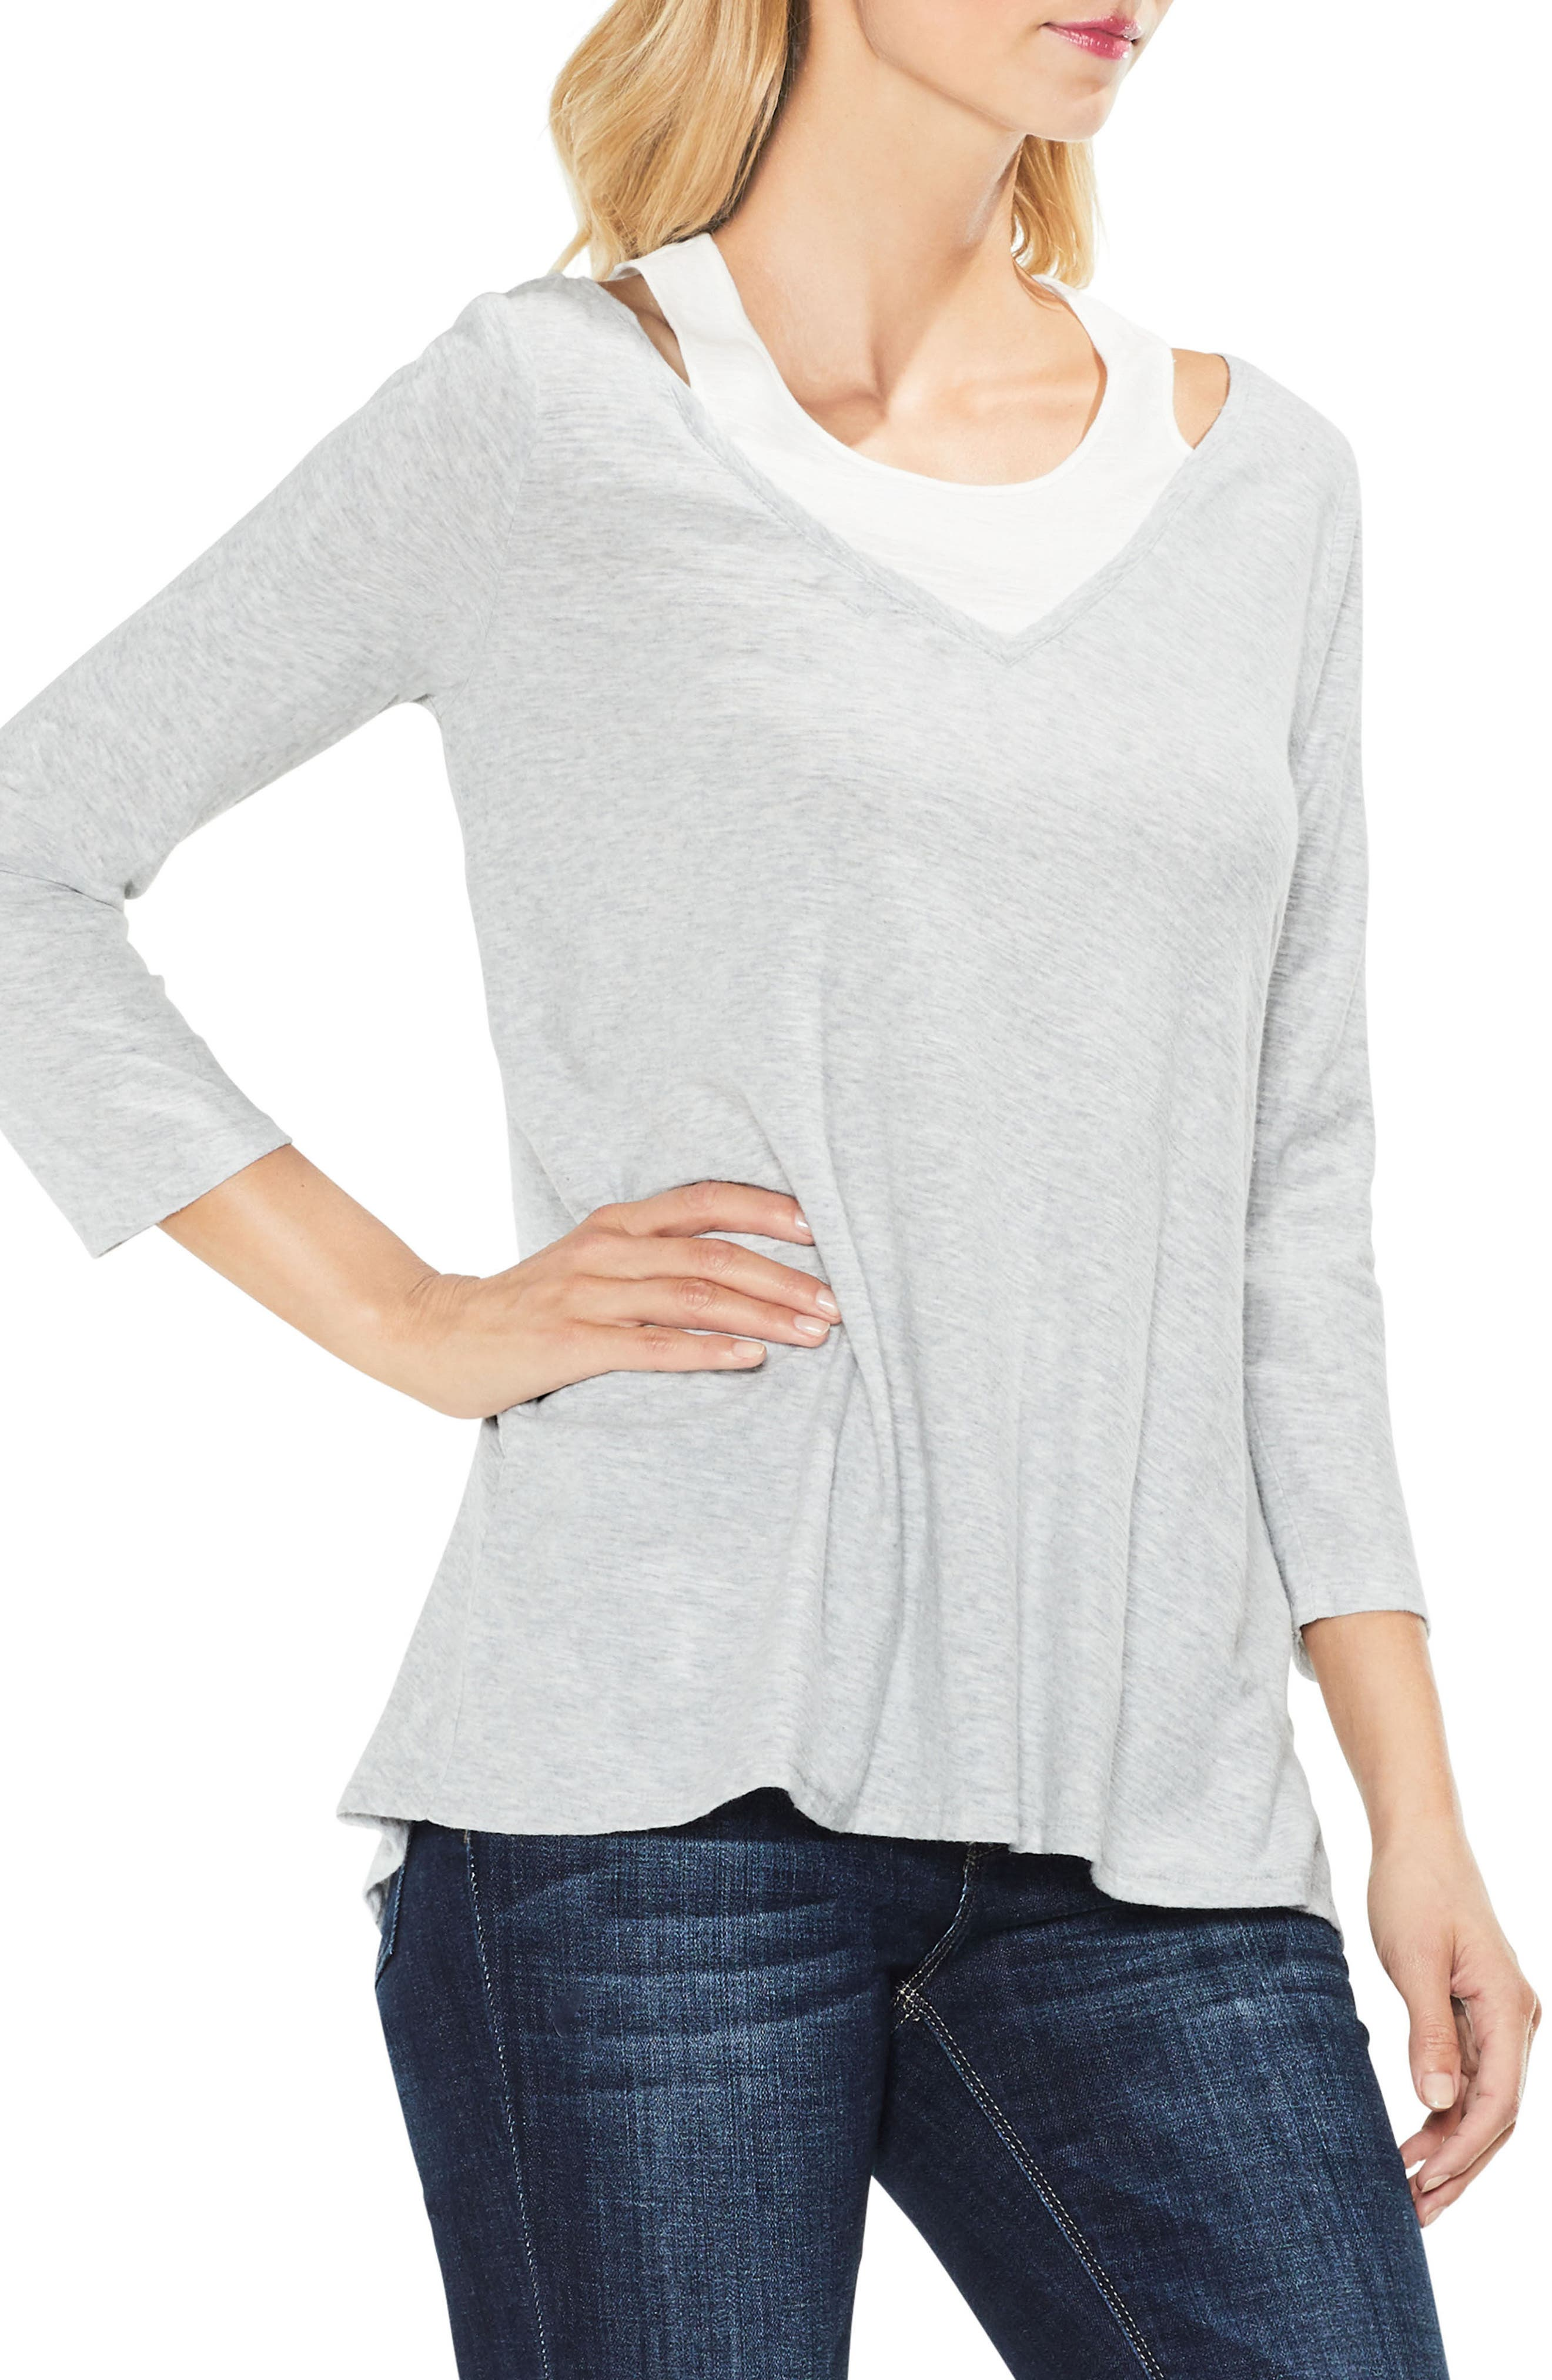 Alternate Image 1 Selected - Two by Vince Camuto Layered Top